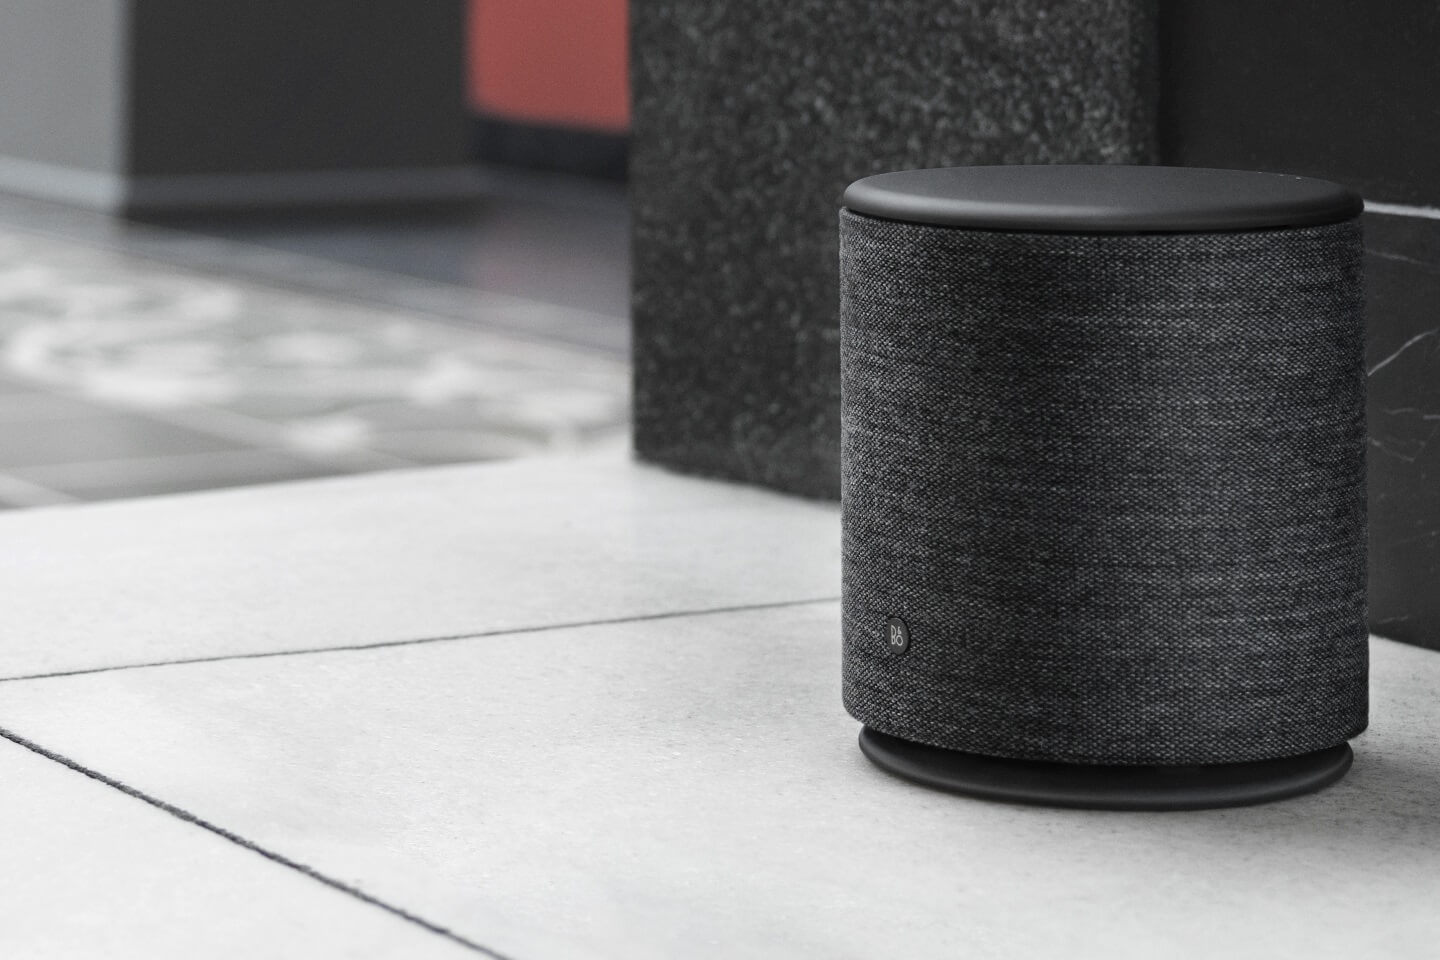 BeoPlay M5 black